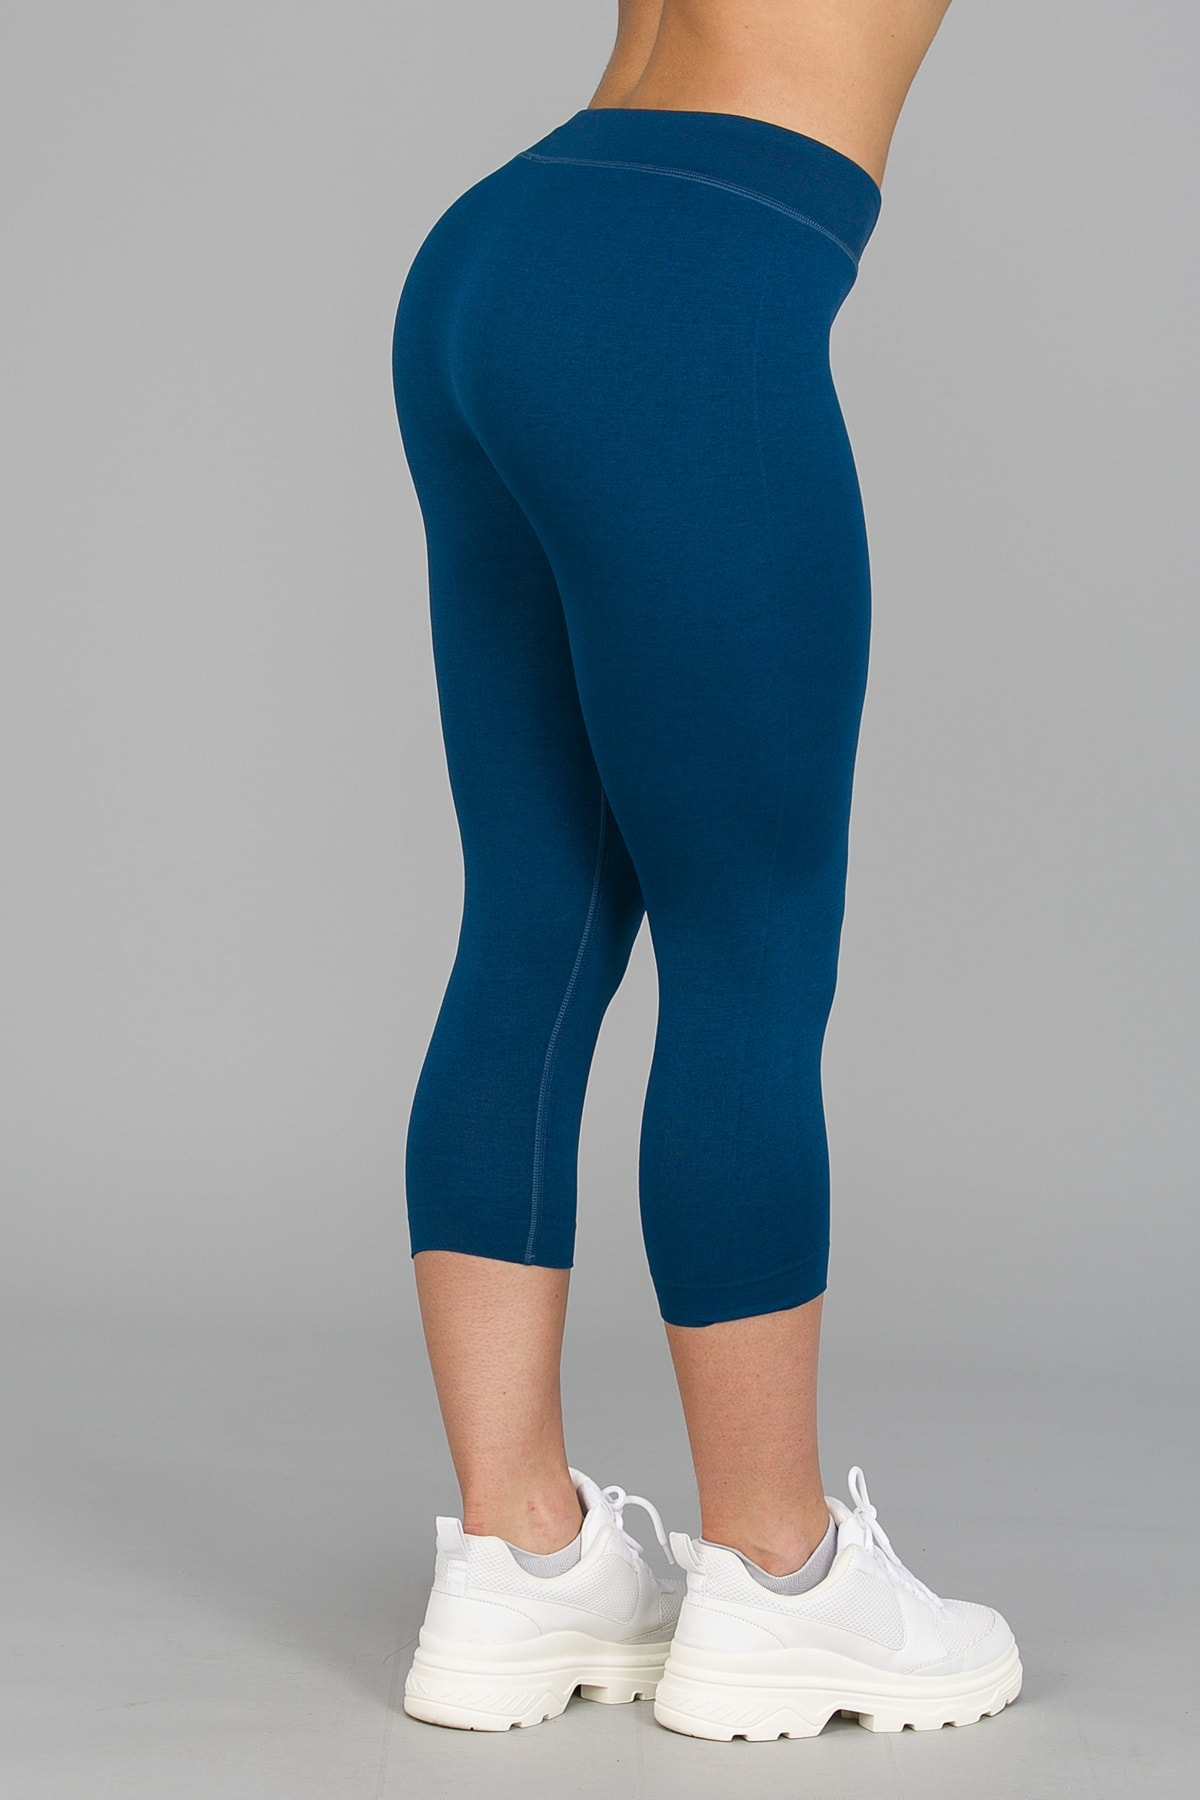 Jerf Captiva Tights (3:4) Navy14